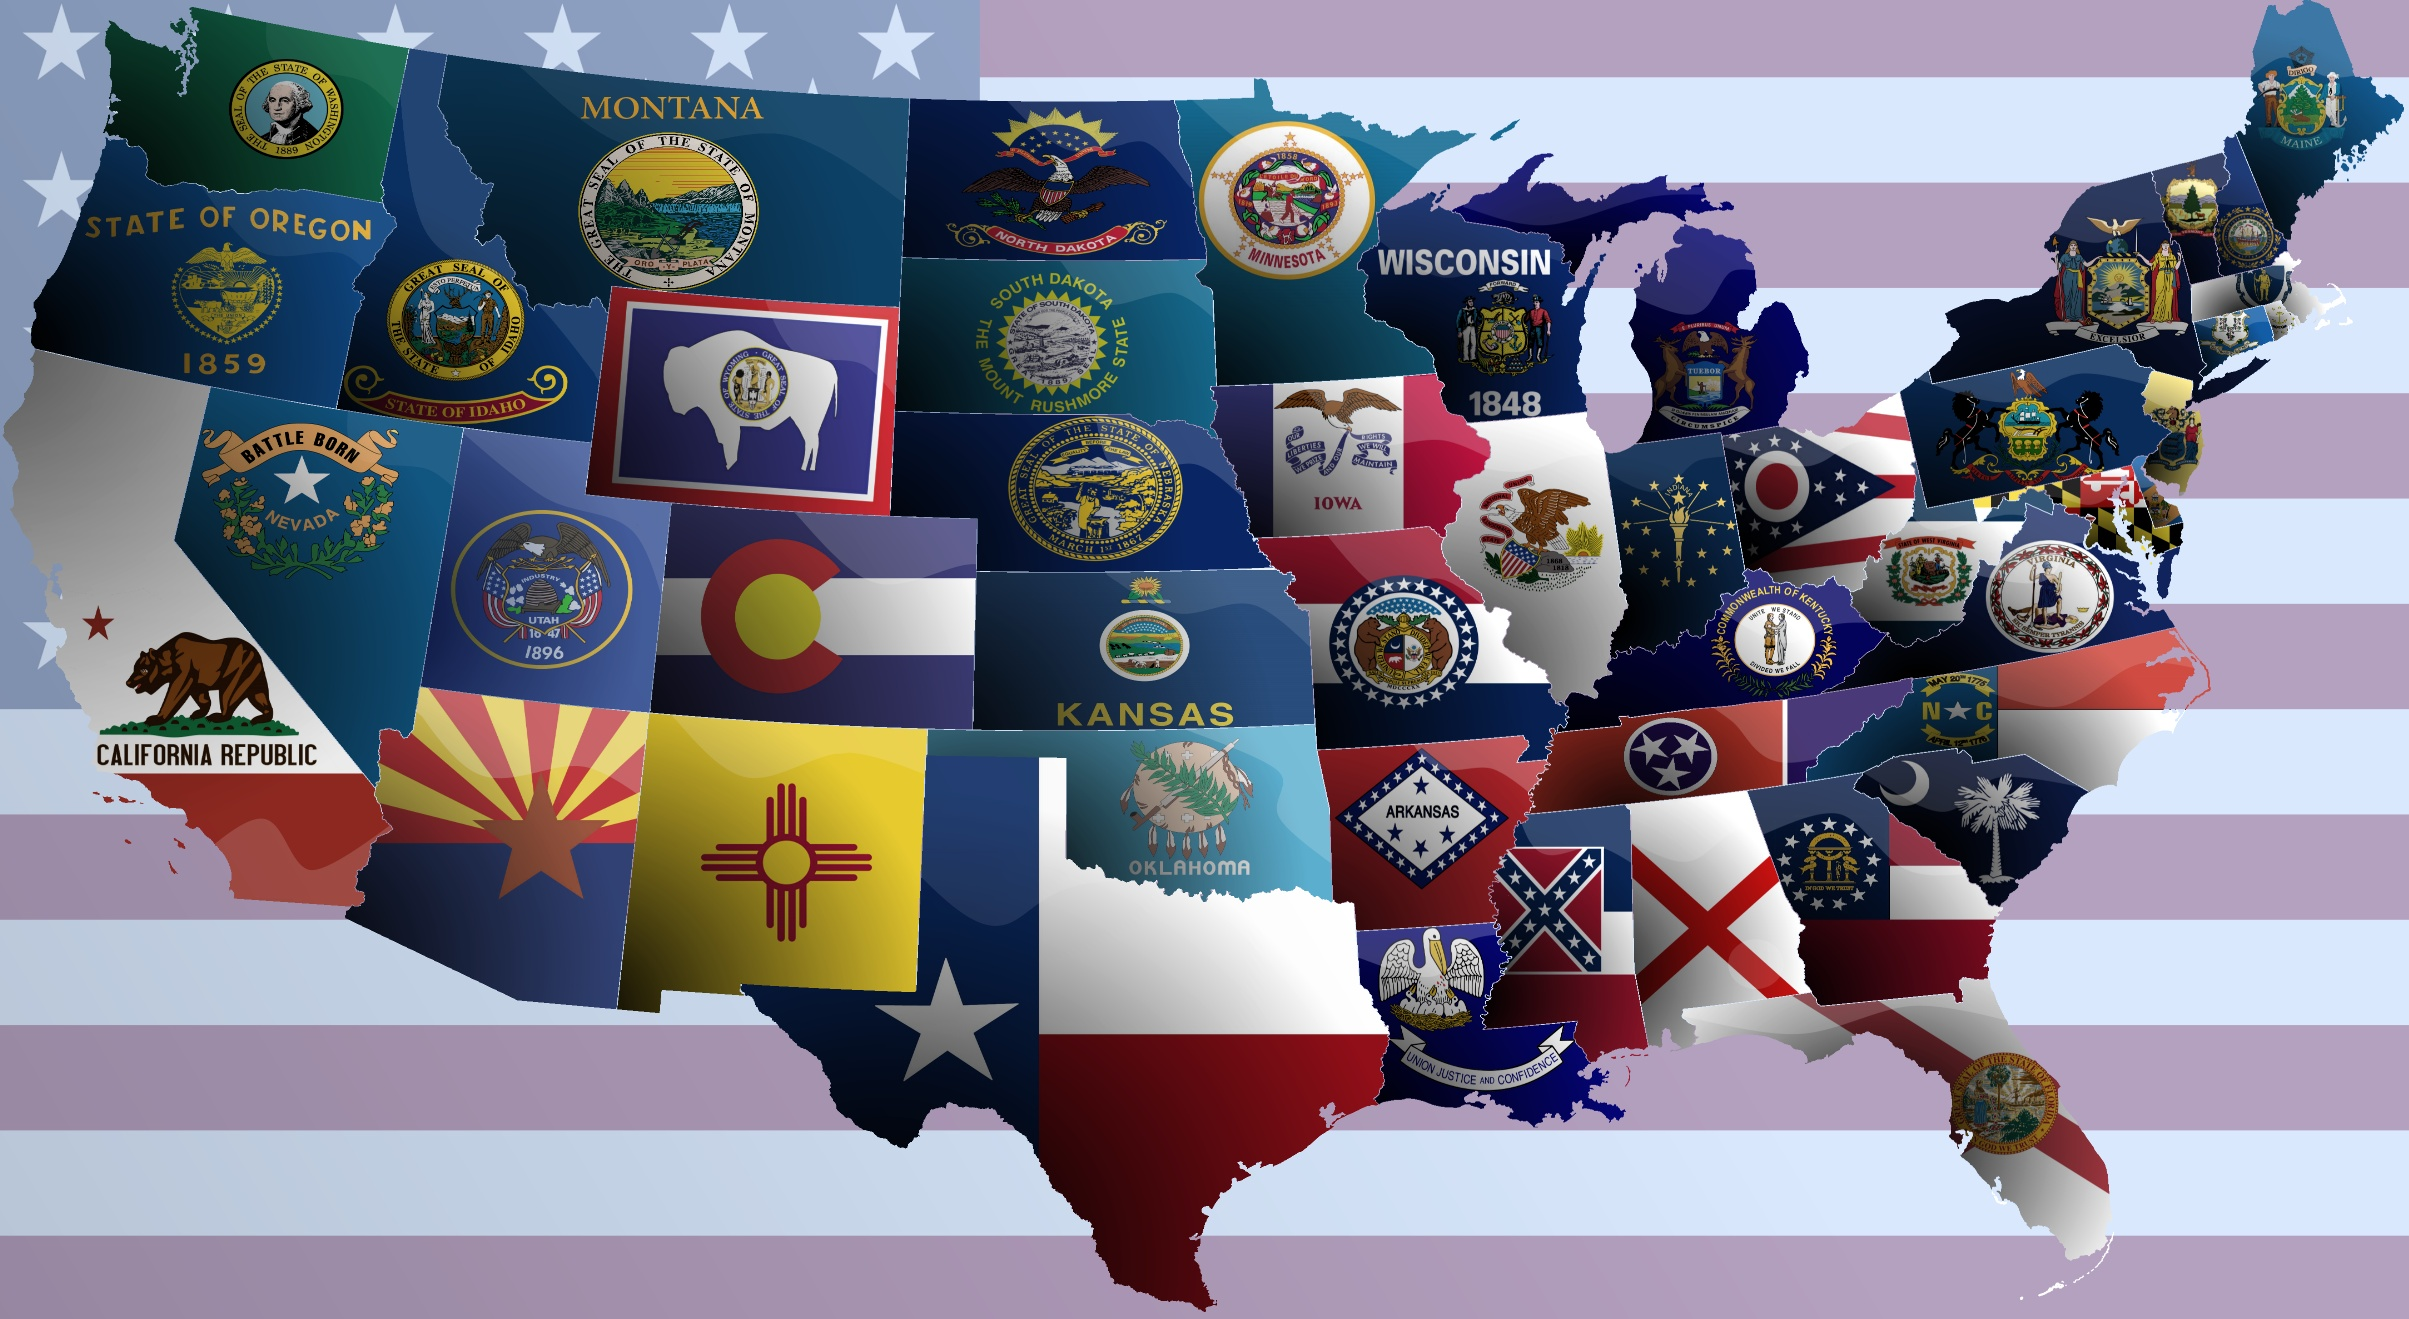 United States Of America Flag Map By JaySimons On DeviantArt - Picture of the united states of america map